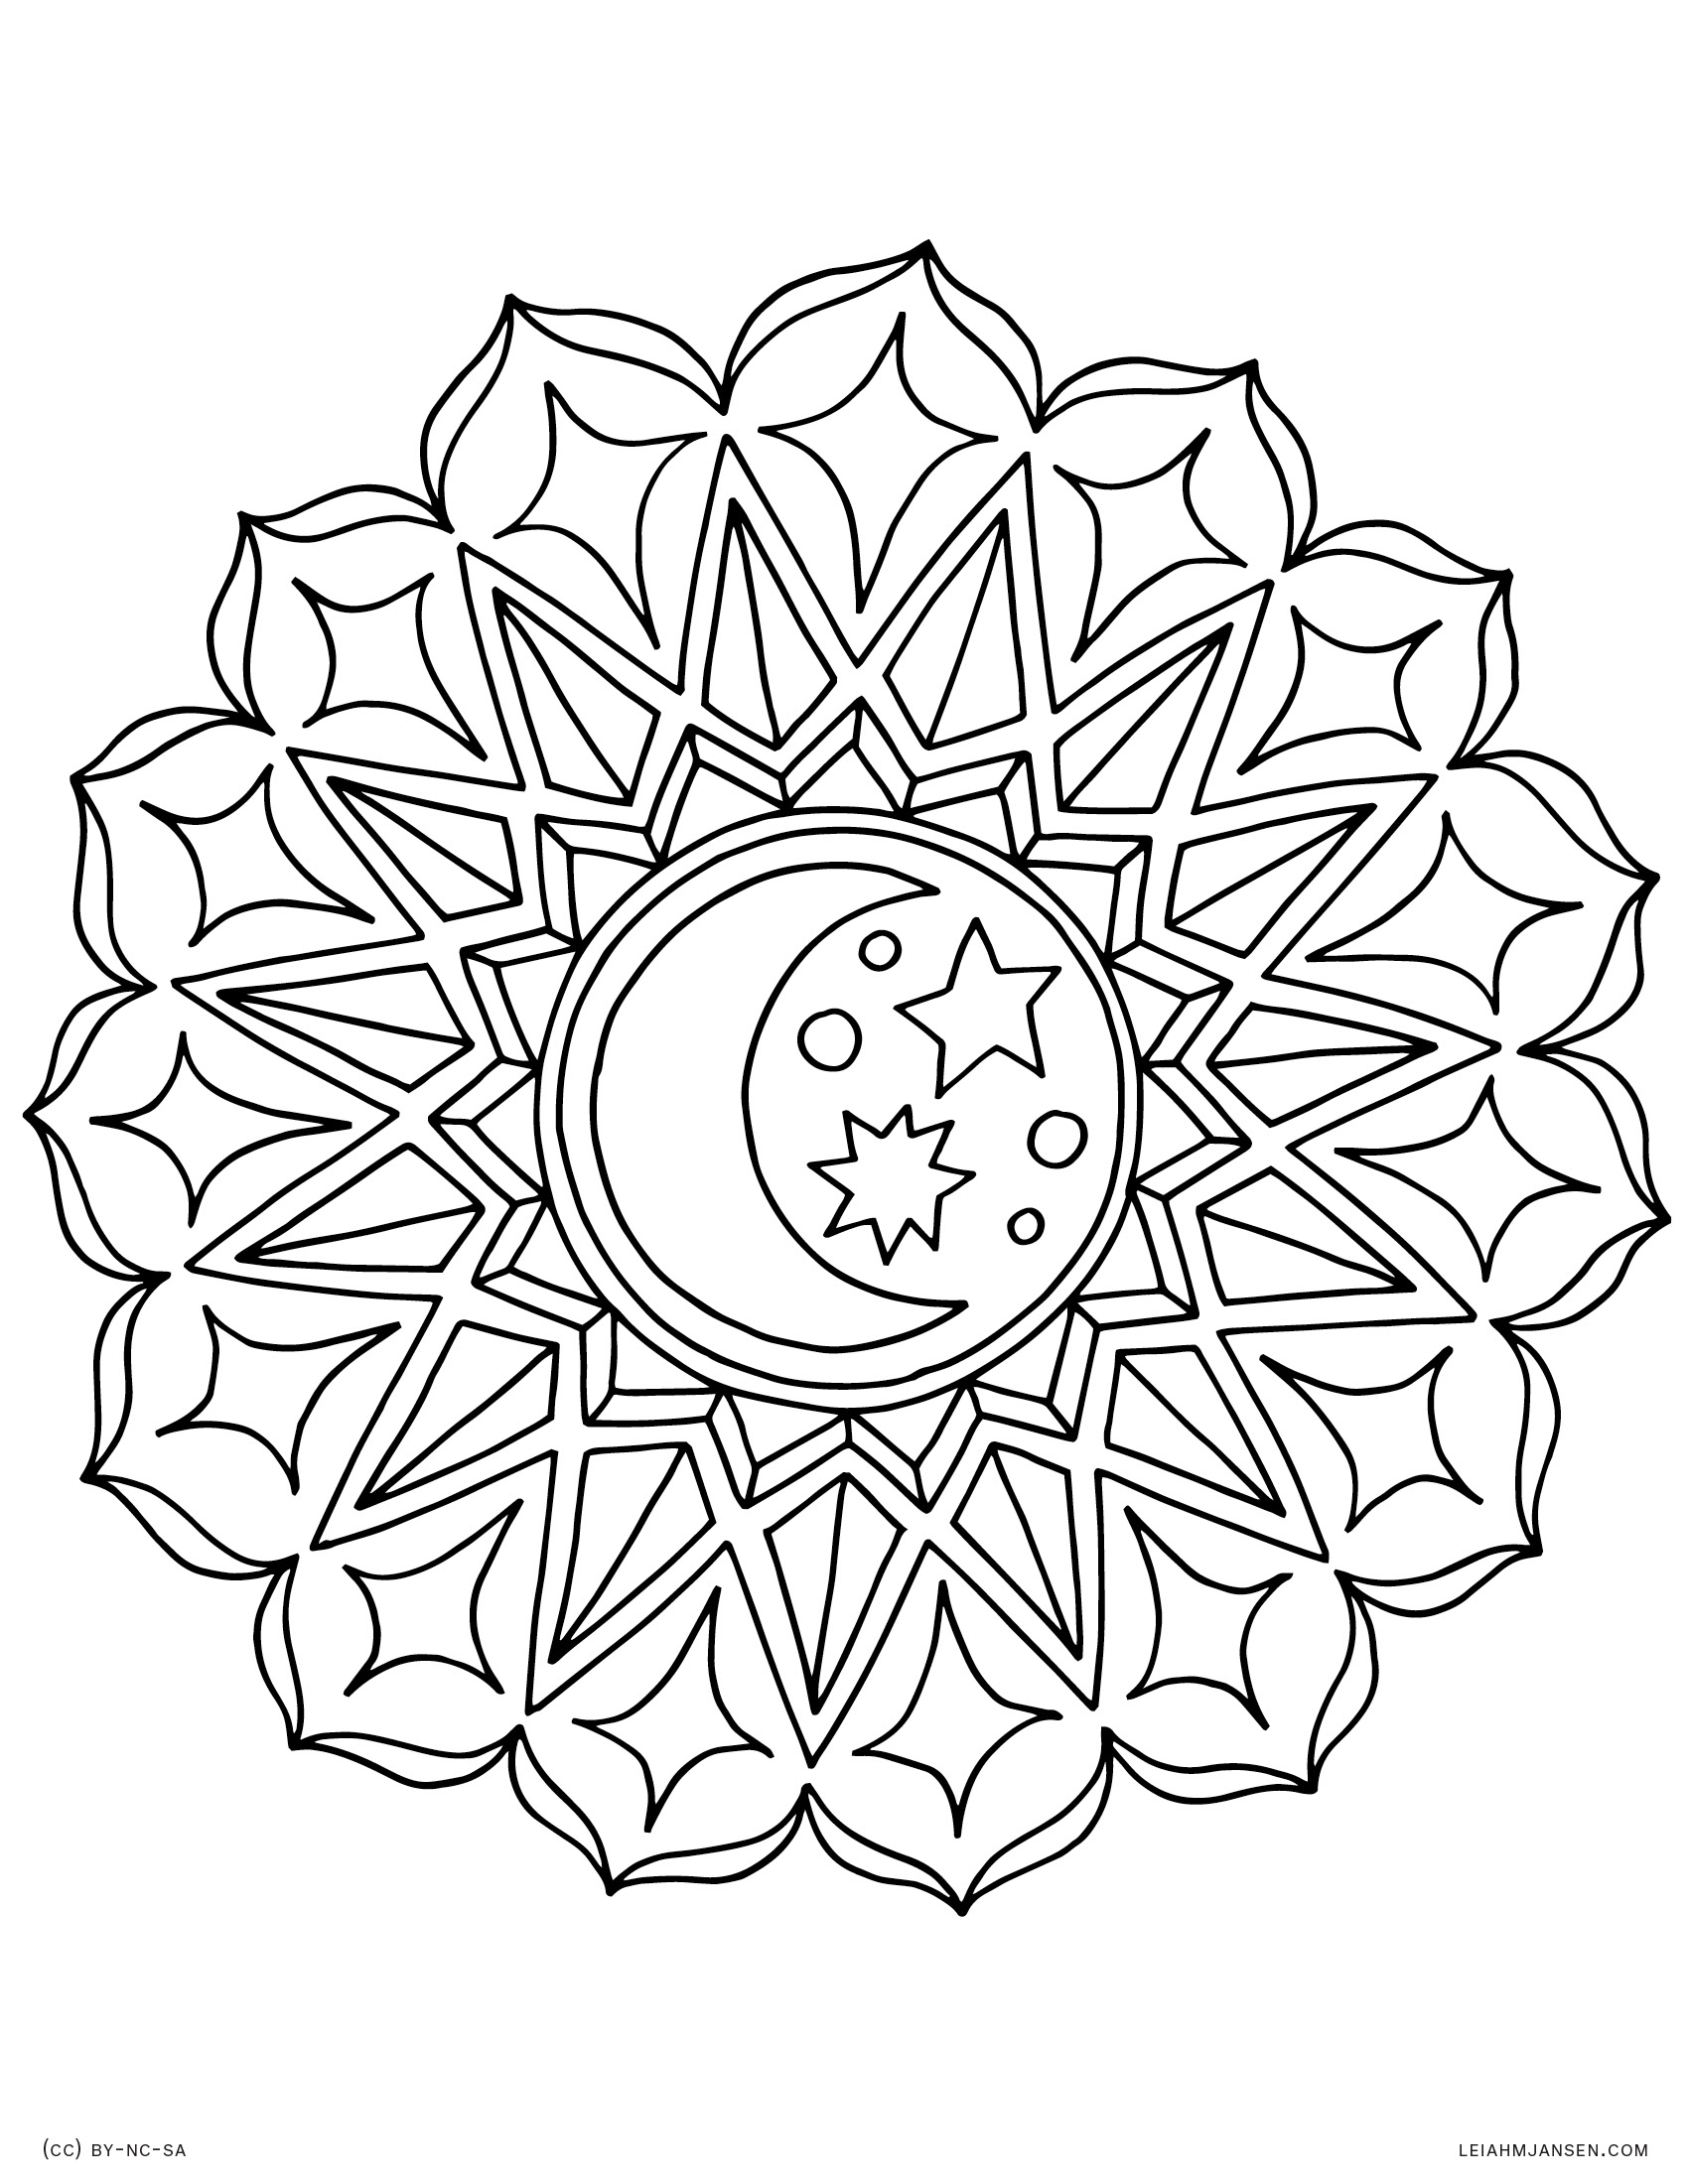 Kid Friendly Coloring Pages At Getcolorings